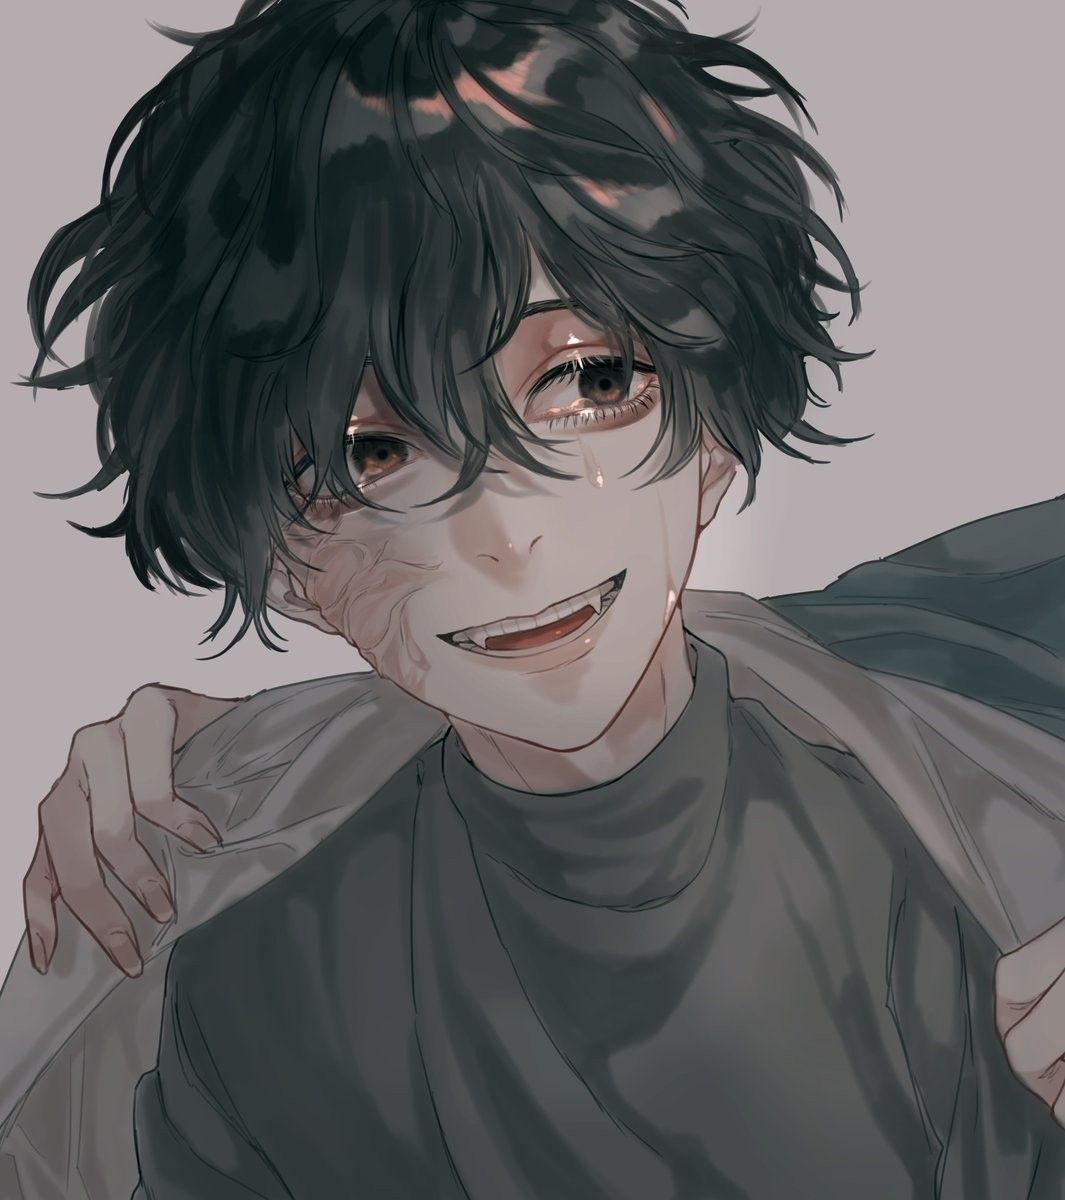 Pin by MUSE C. on Anime Boy | Yandere anime, Anime ...